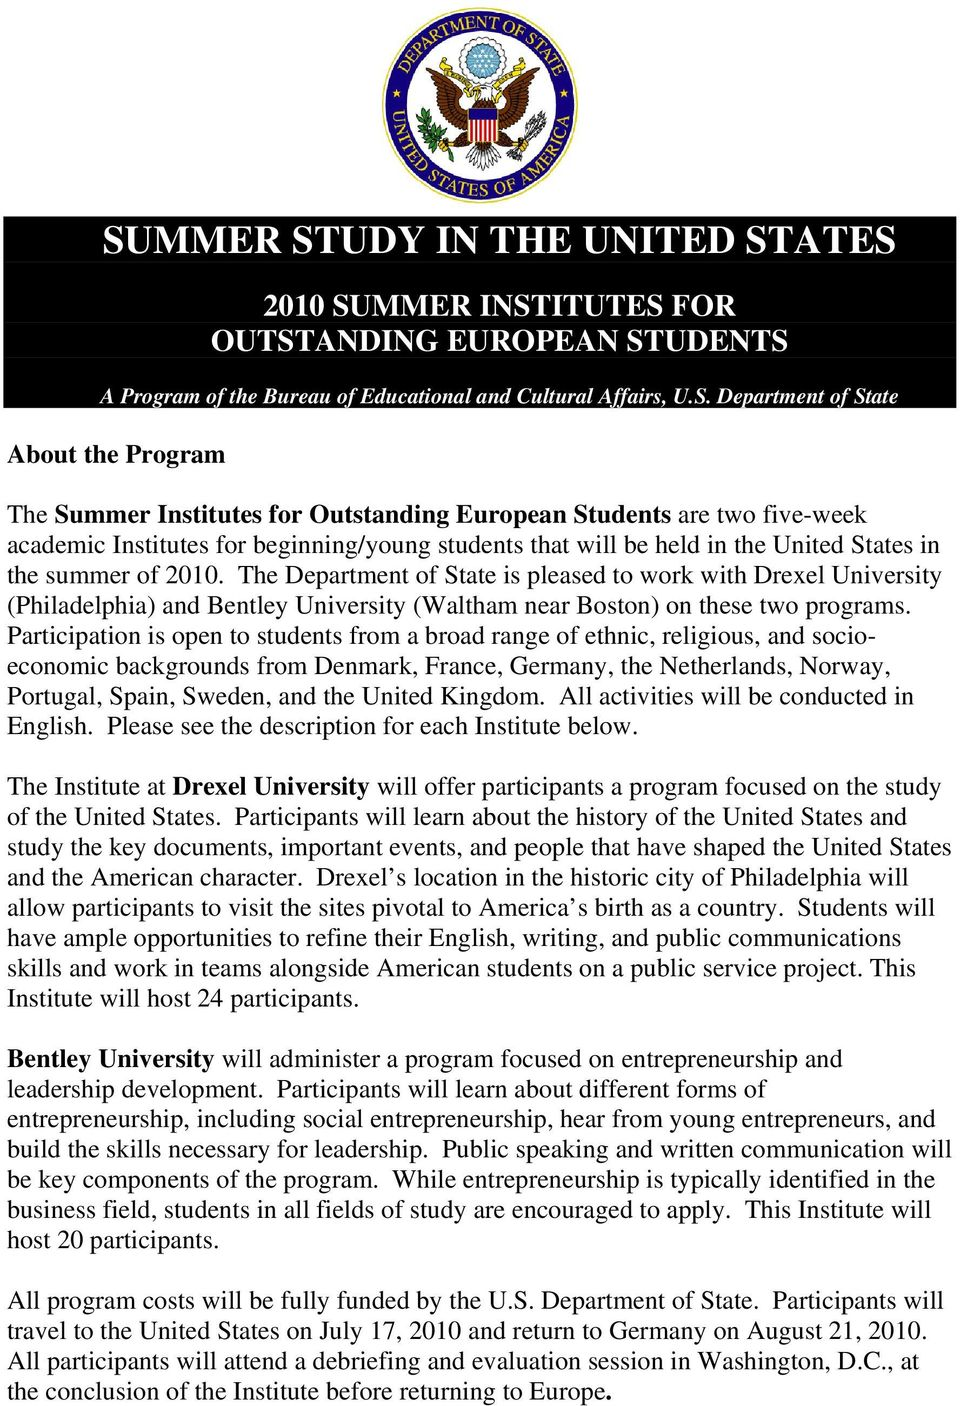 The Department of State is pleased to work with Drexel University (Philadelphia) and Bentley University (Waltham near Boston) on these two programs.